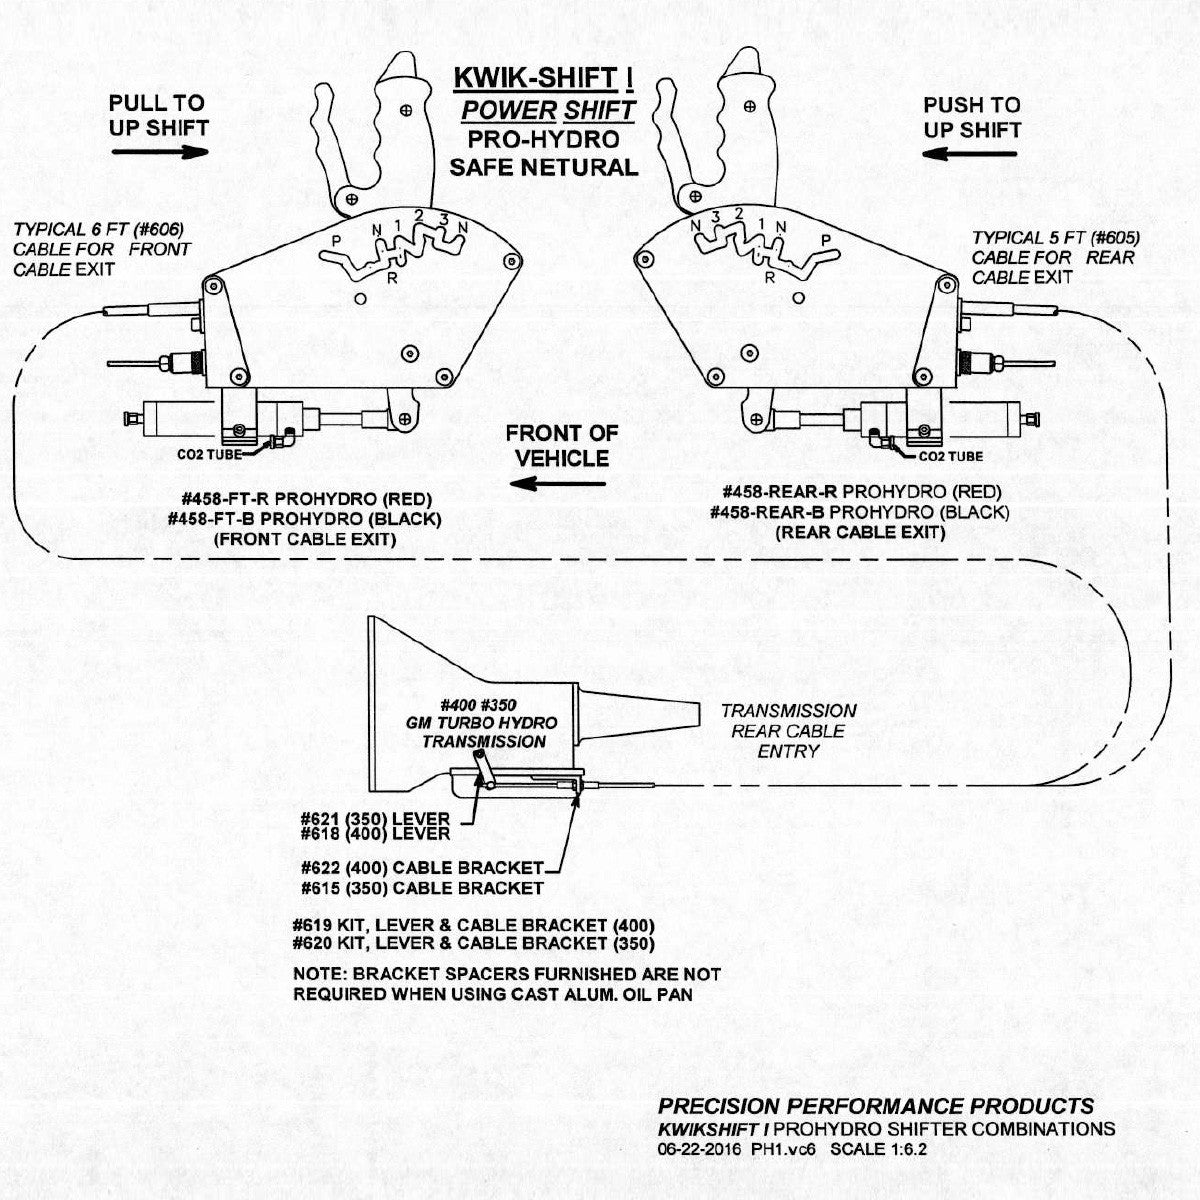 Om642 Mercedes Wire Harness Routing | Wiring Diagram